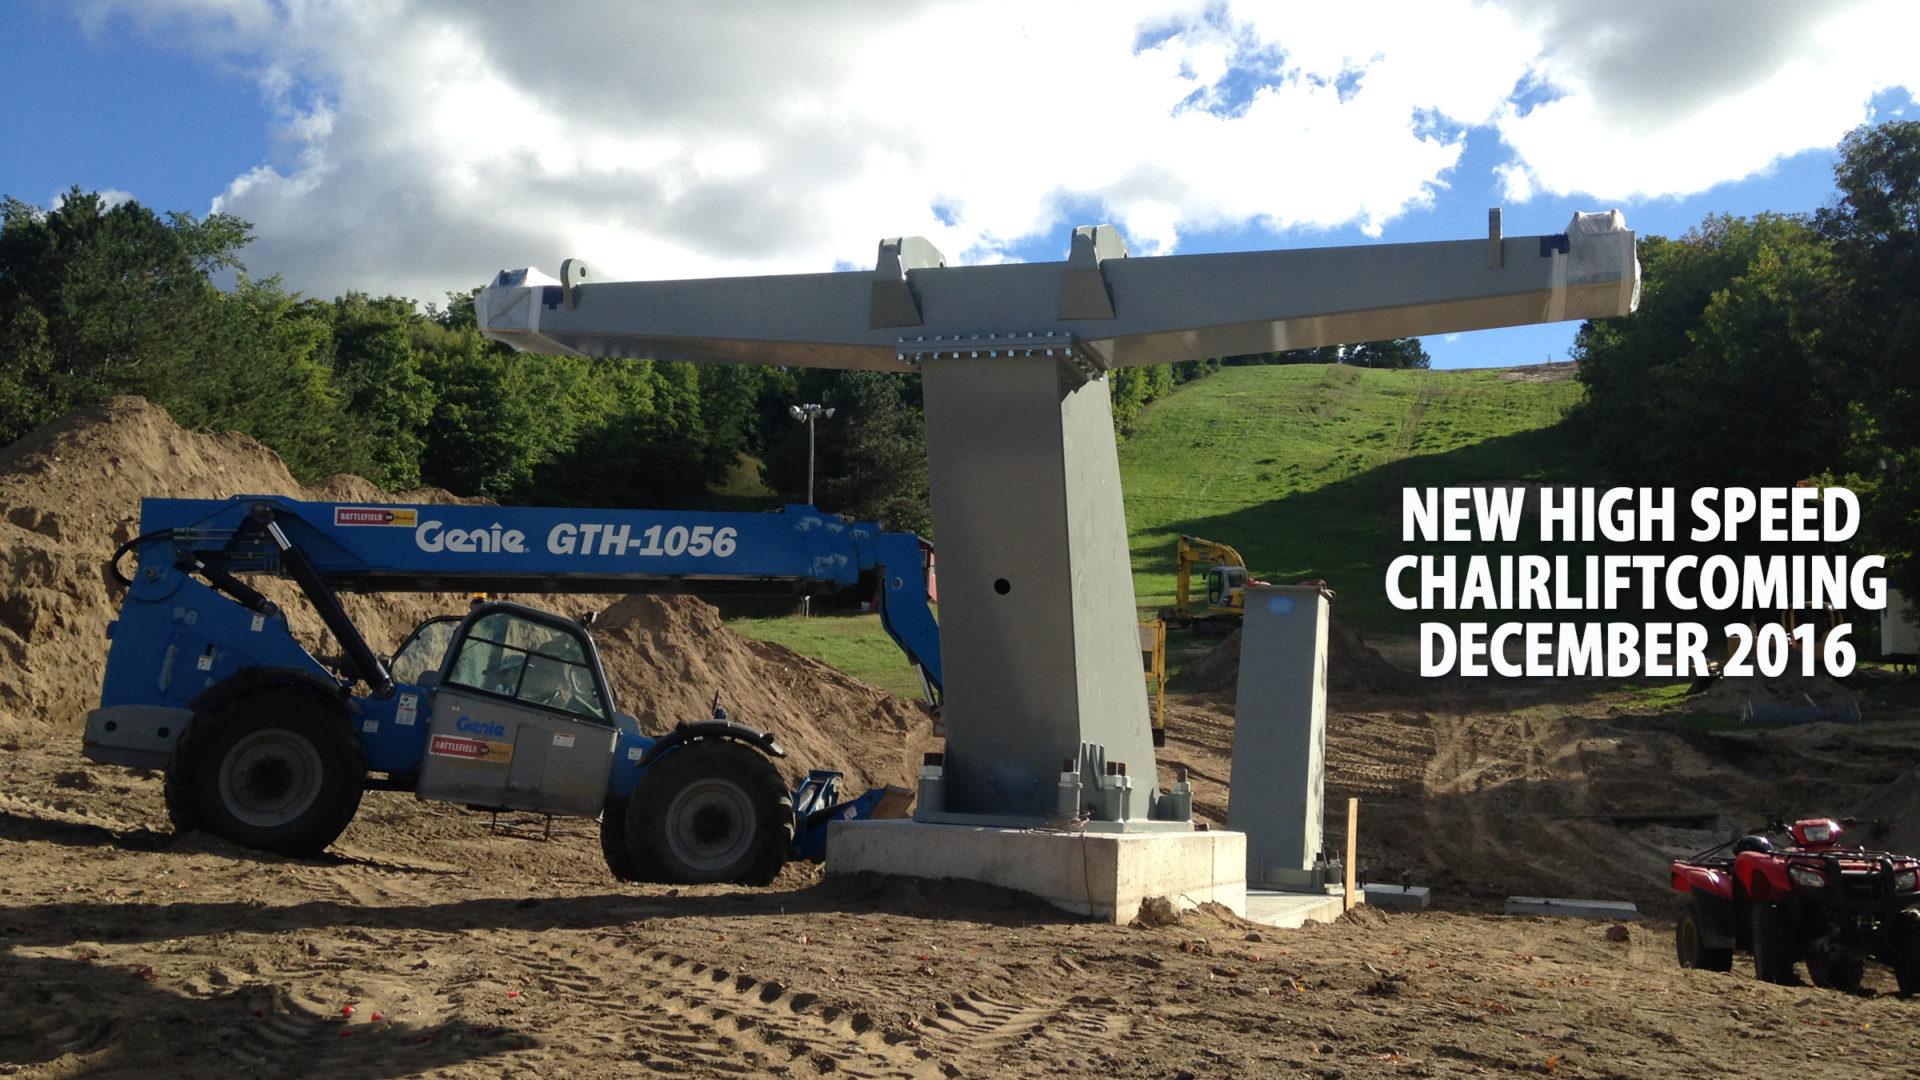 New six-person high speed chairlift coming winter, 2016